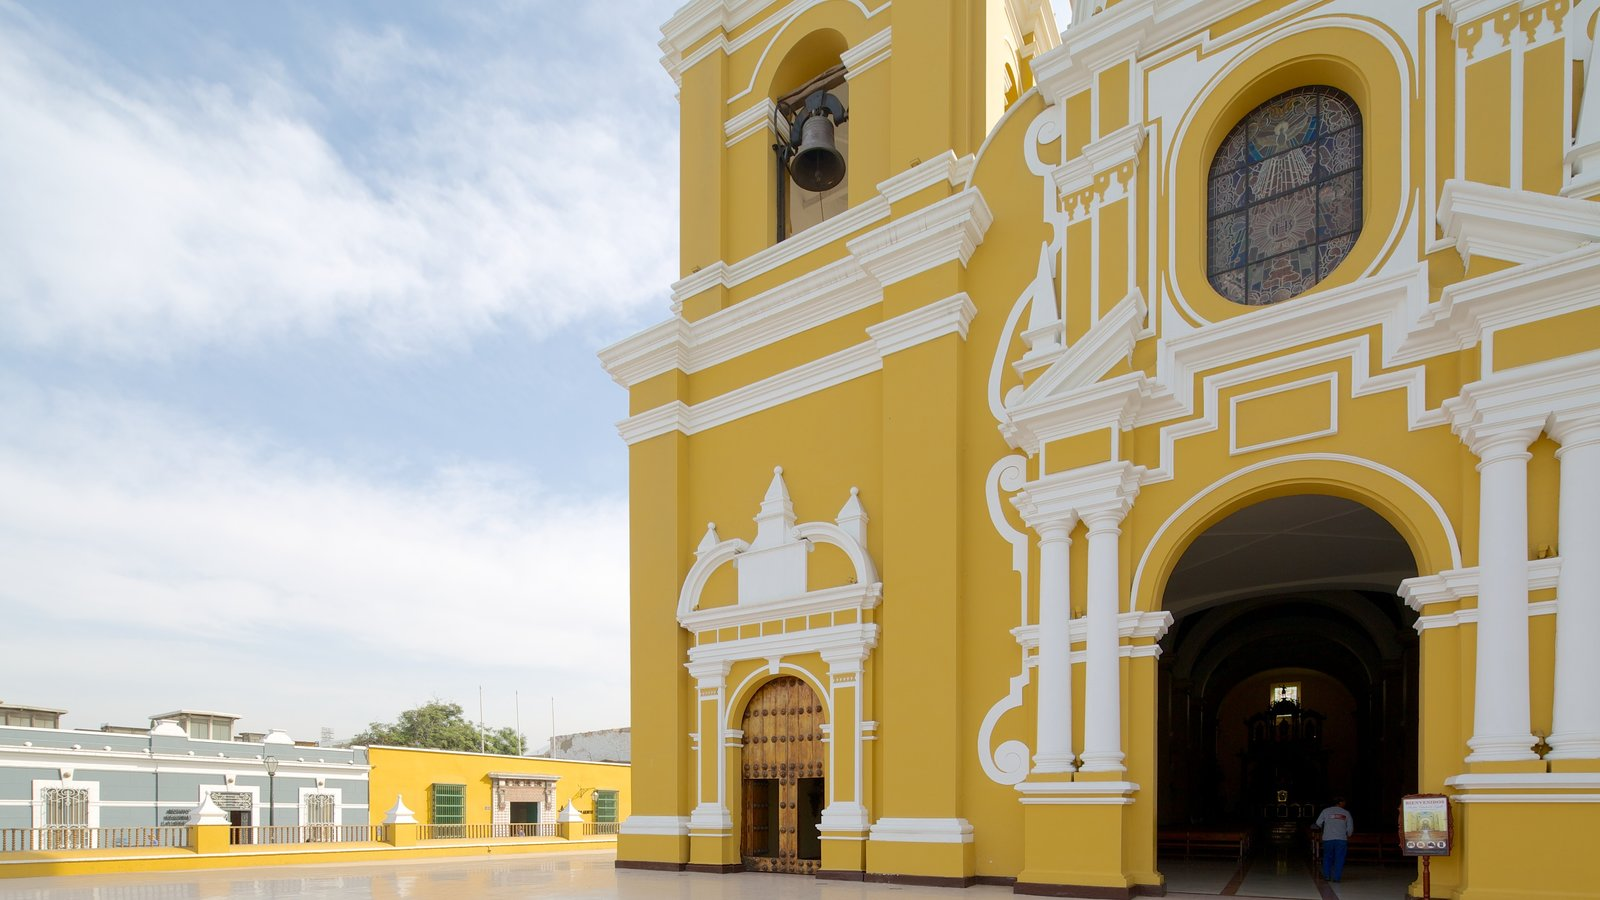 Trujillo Cathedral featuring a church or cathedral and heritage architecture